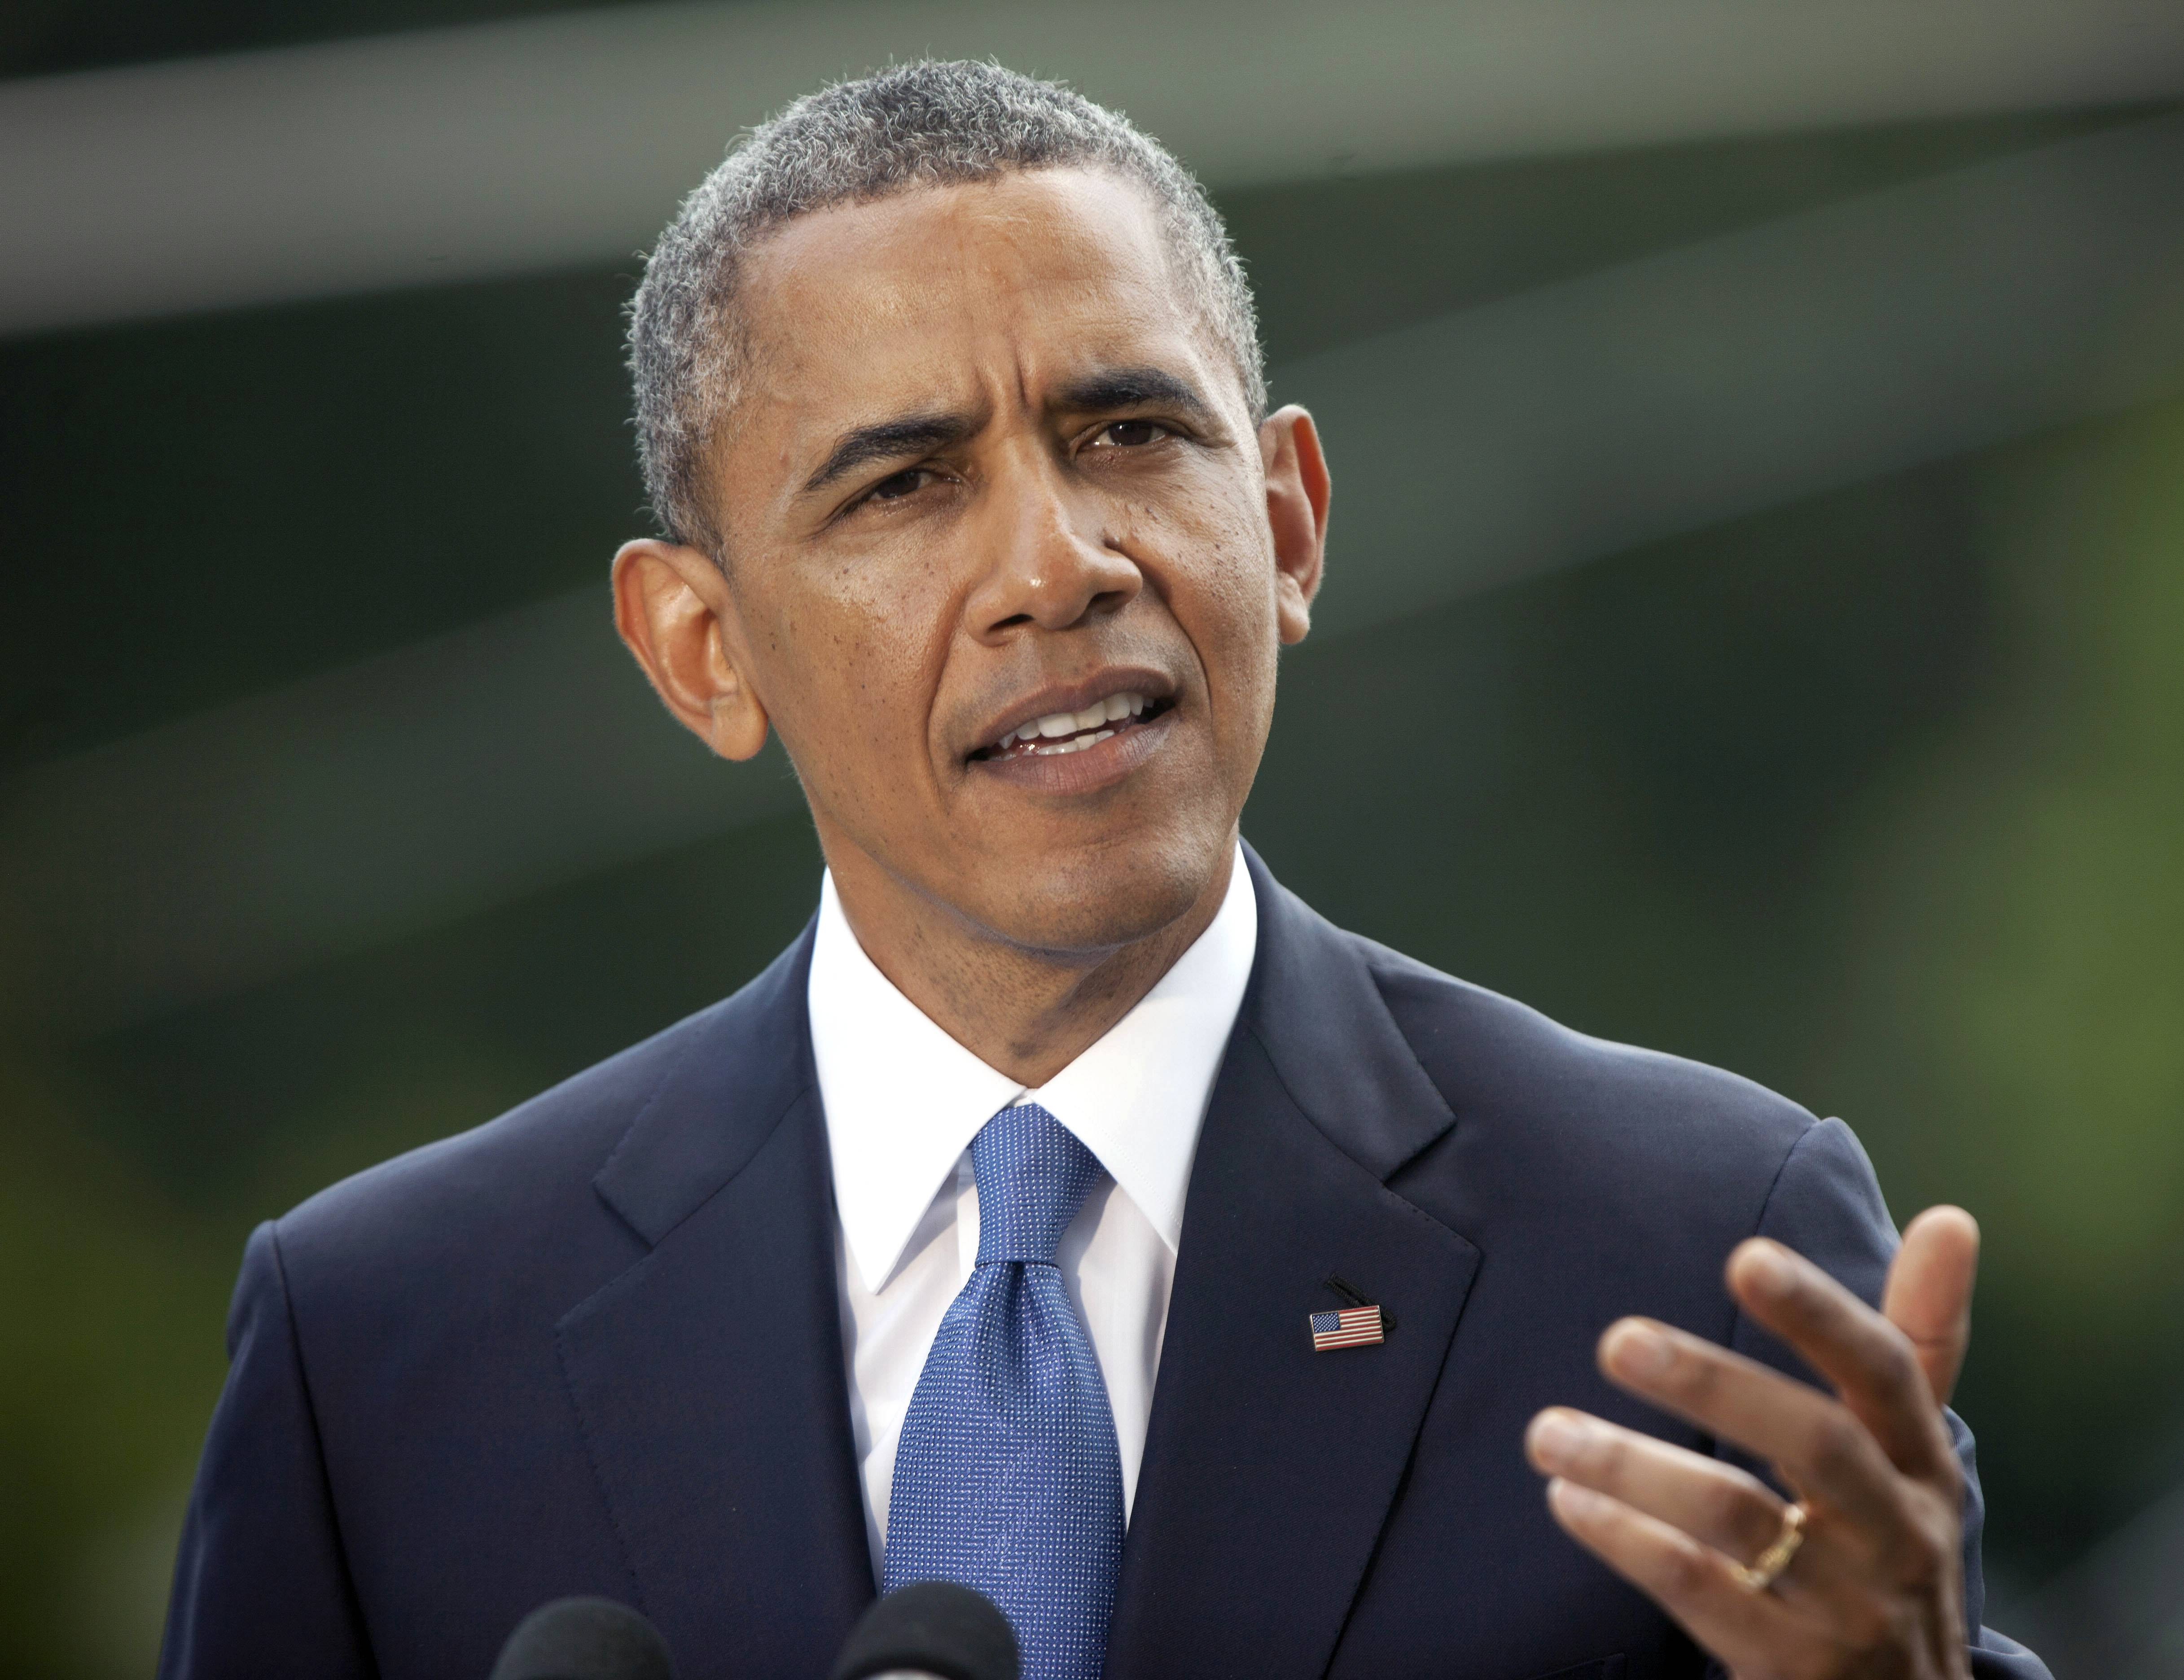 Obama moves to ensure sick leave for gay couples